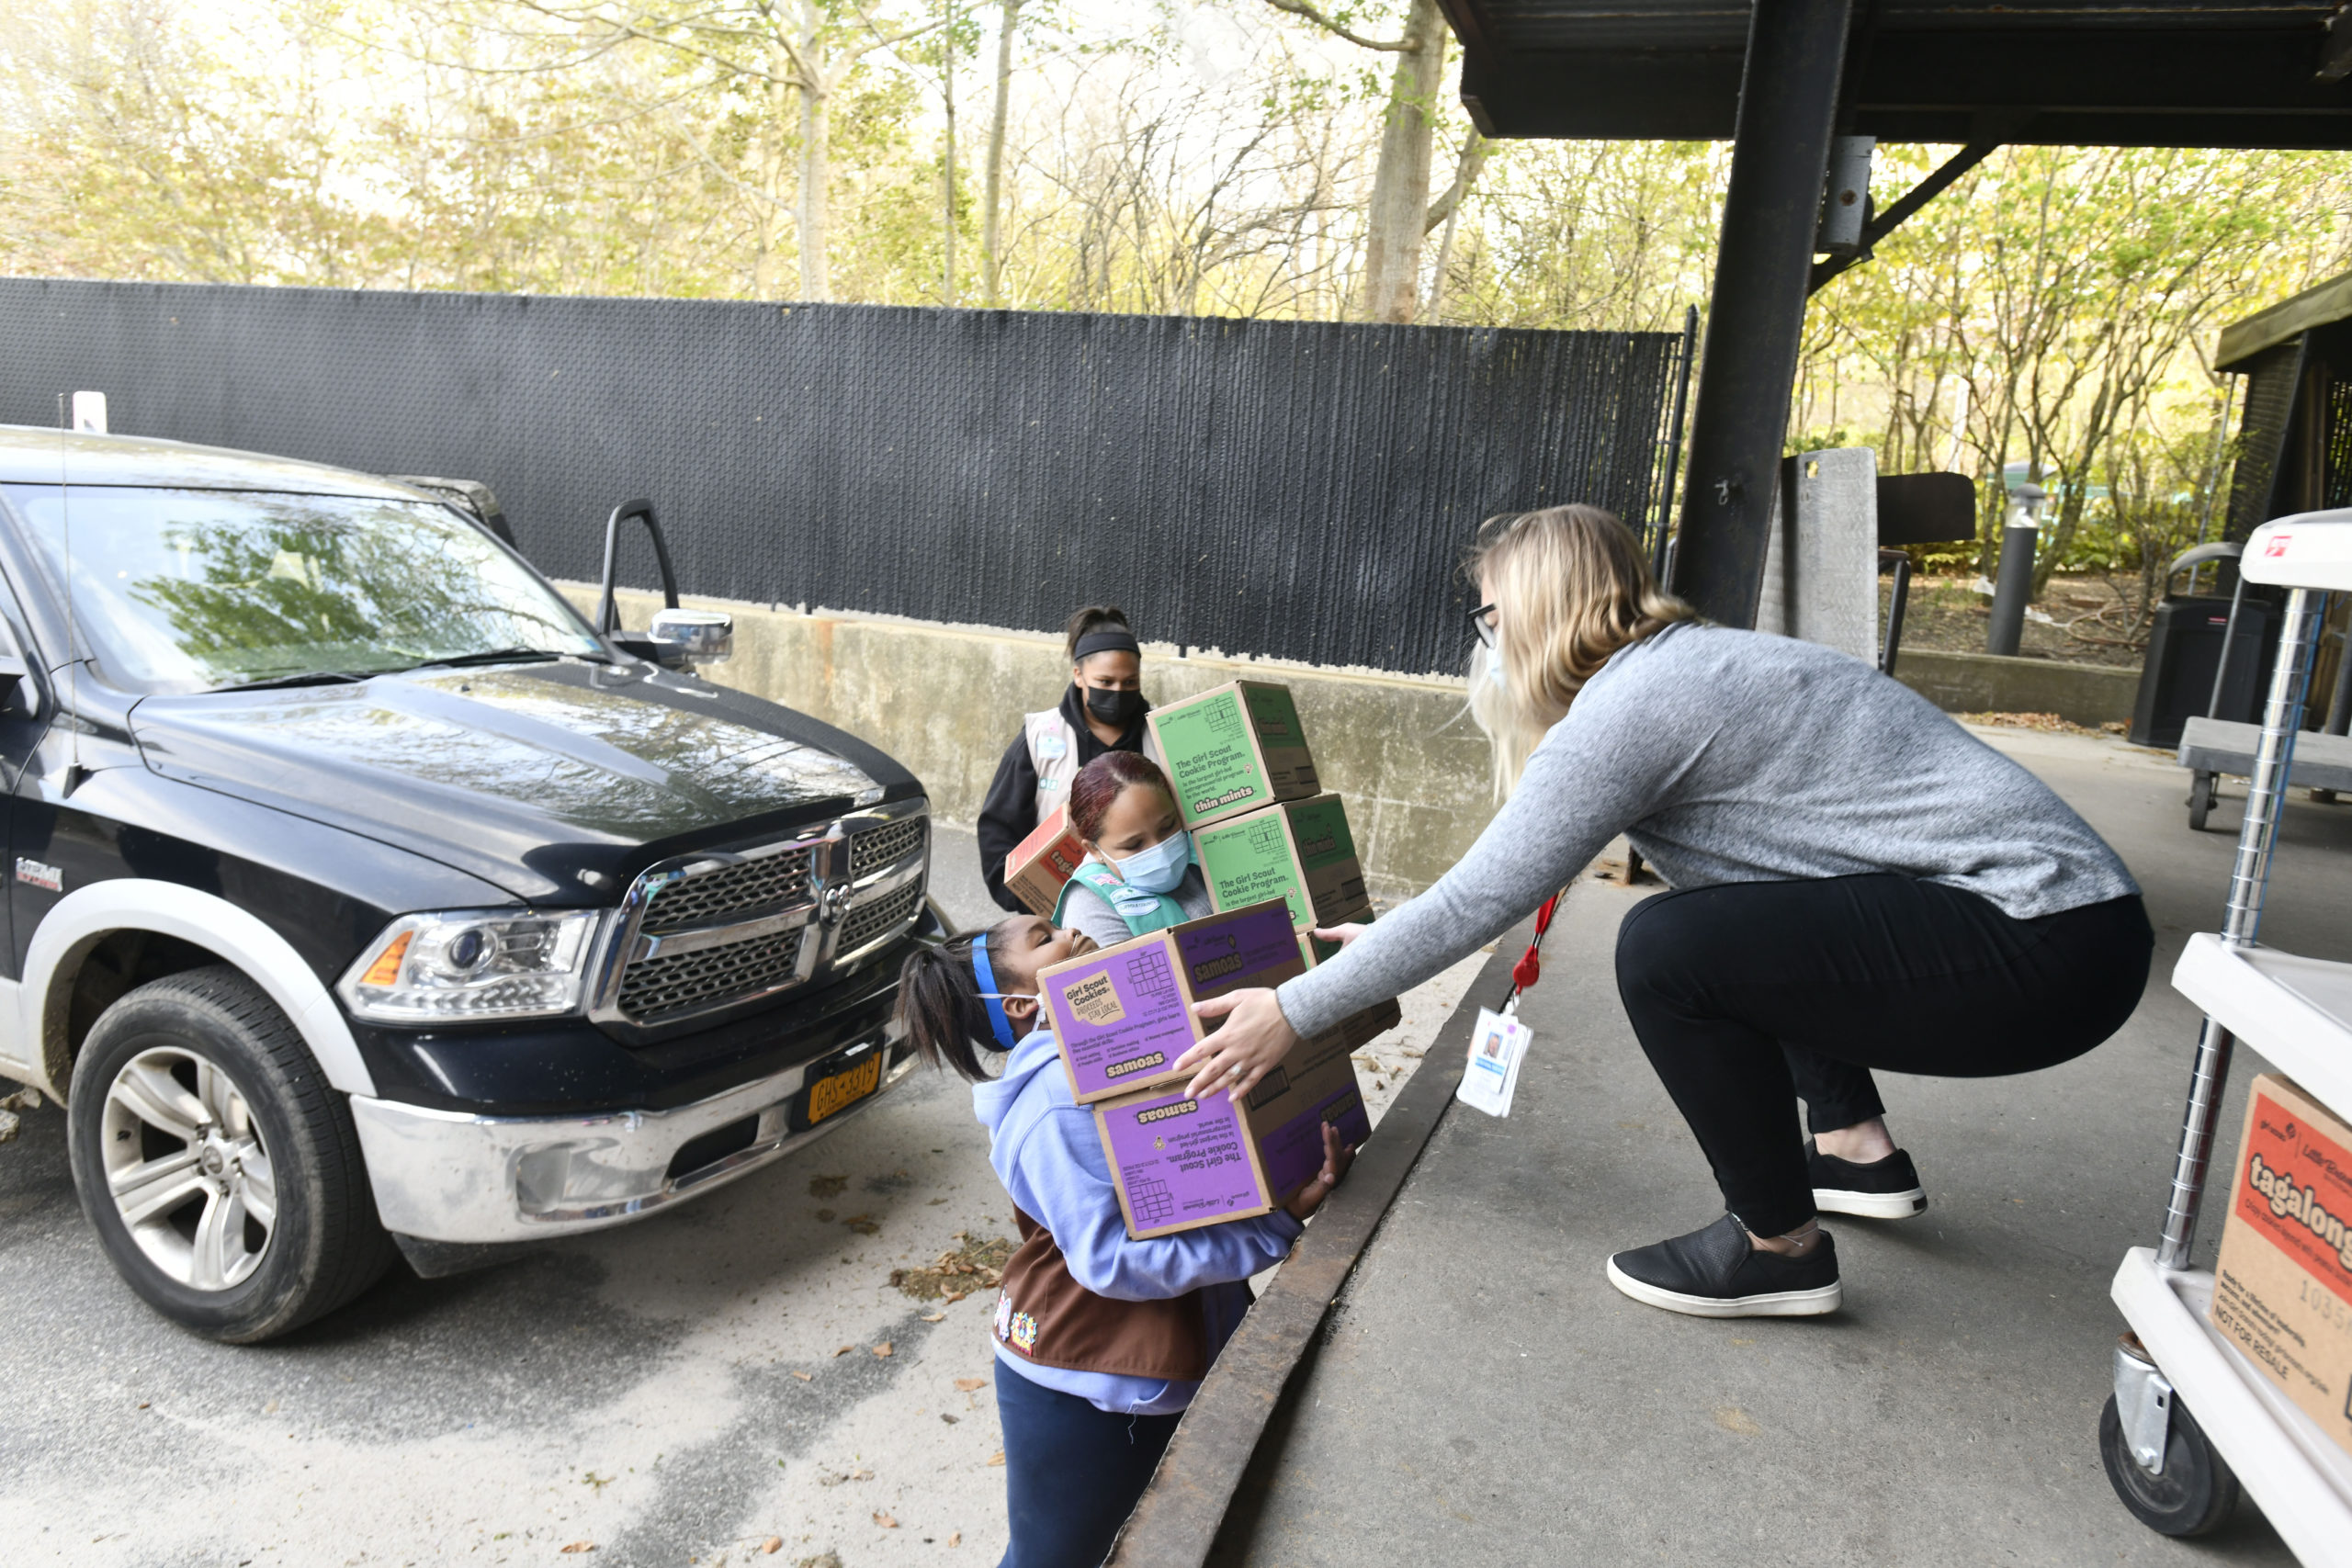 Members of Girl Scout Troop 642, Gabriella Gaines, Syvana Smith and Jordyn Smith, from the Shinnecock Nation dropped off 300 boxes (25 cases) of Girls Scout Cookies for the employees at Stony Brook Southampton Hospital on Sunday afternoon.  DANA SHAW